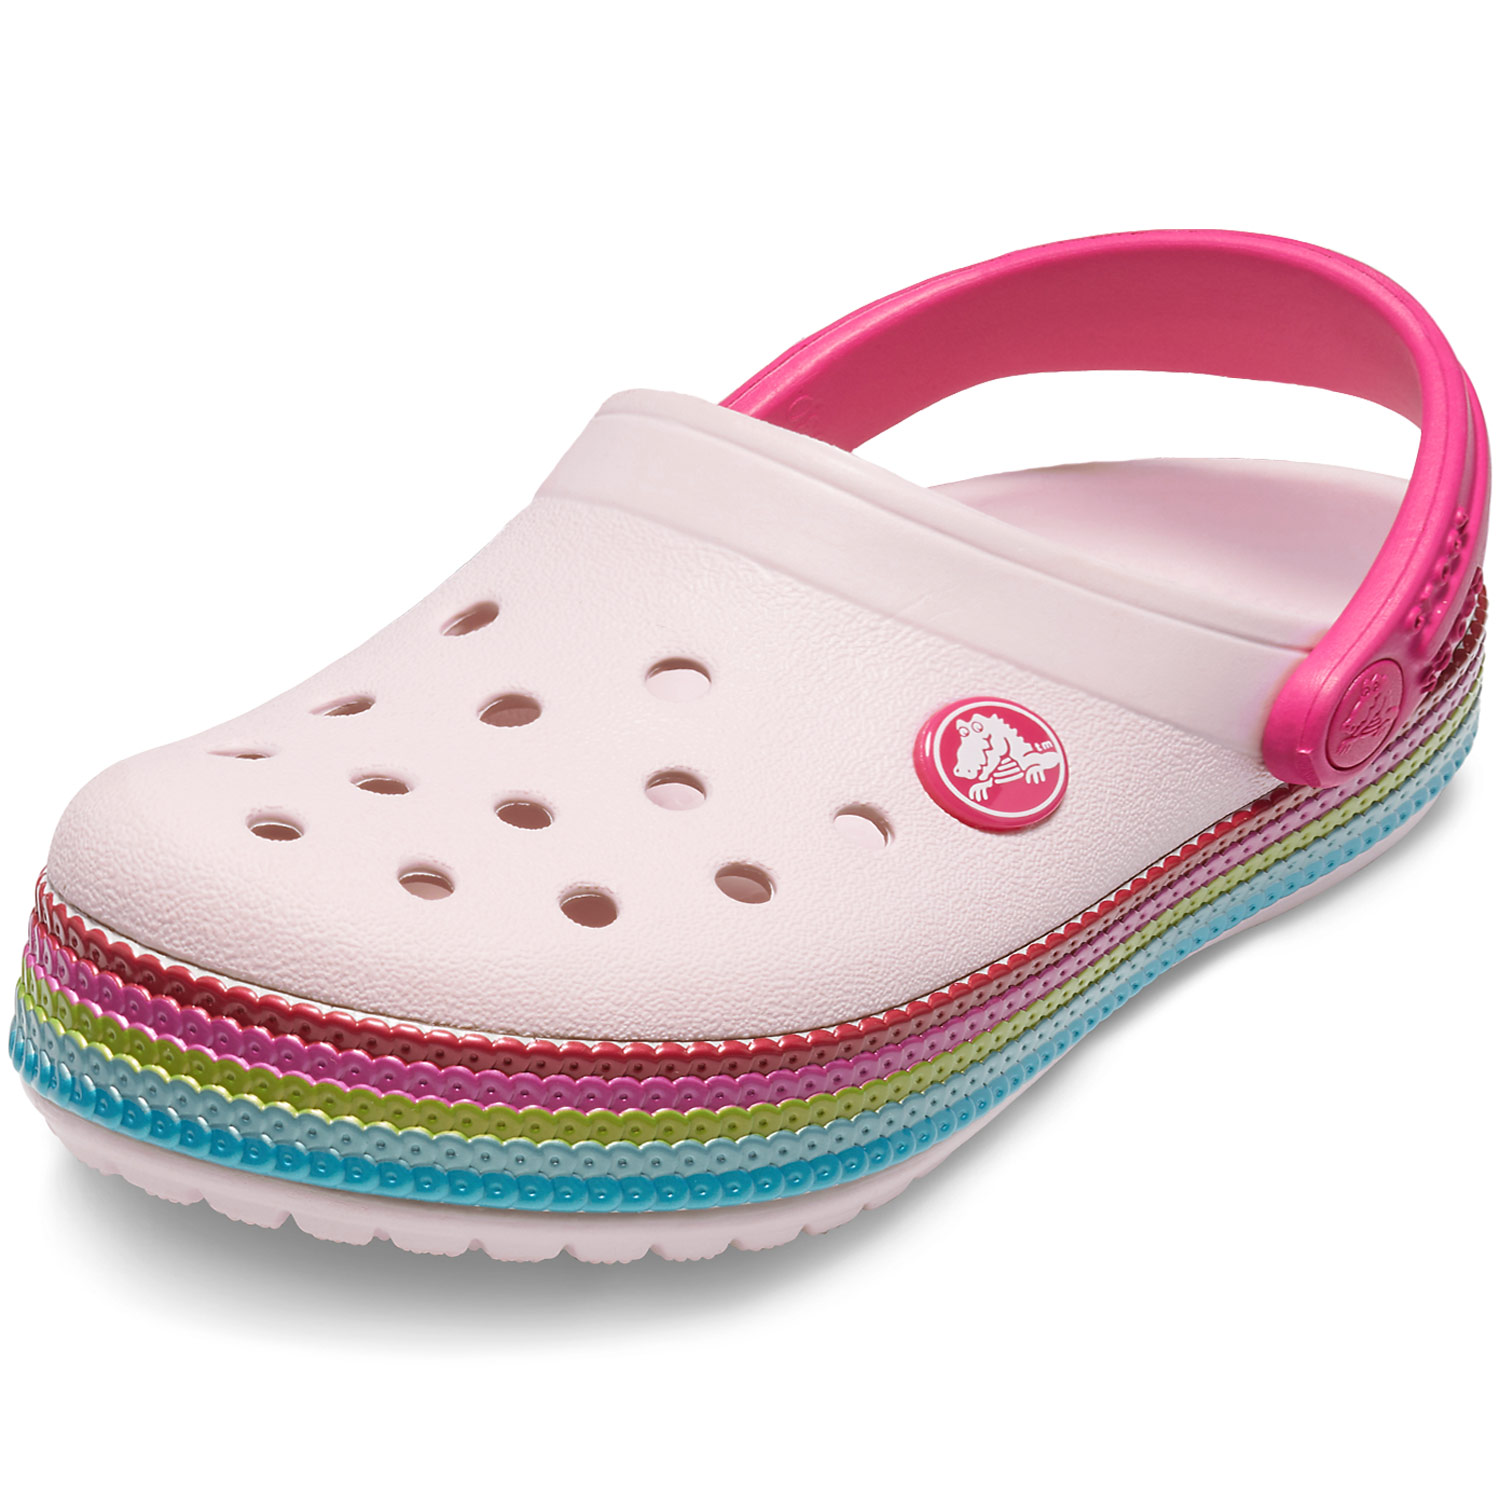 new product eb9fa 83c1d Crocs Crocband Sequin Band Kids Girl Clogs barely pink